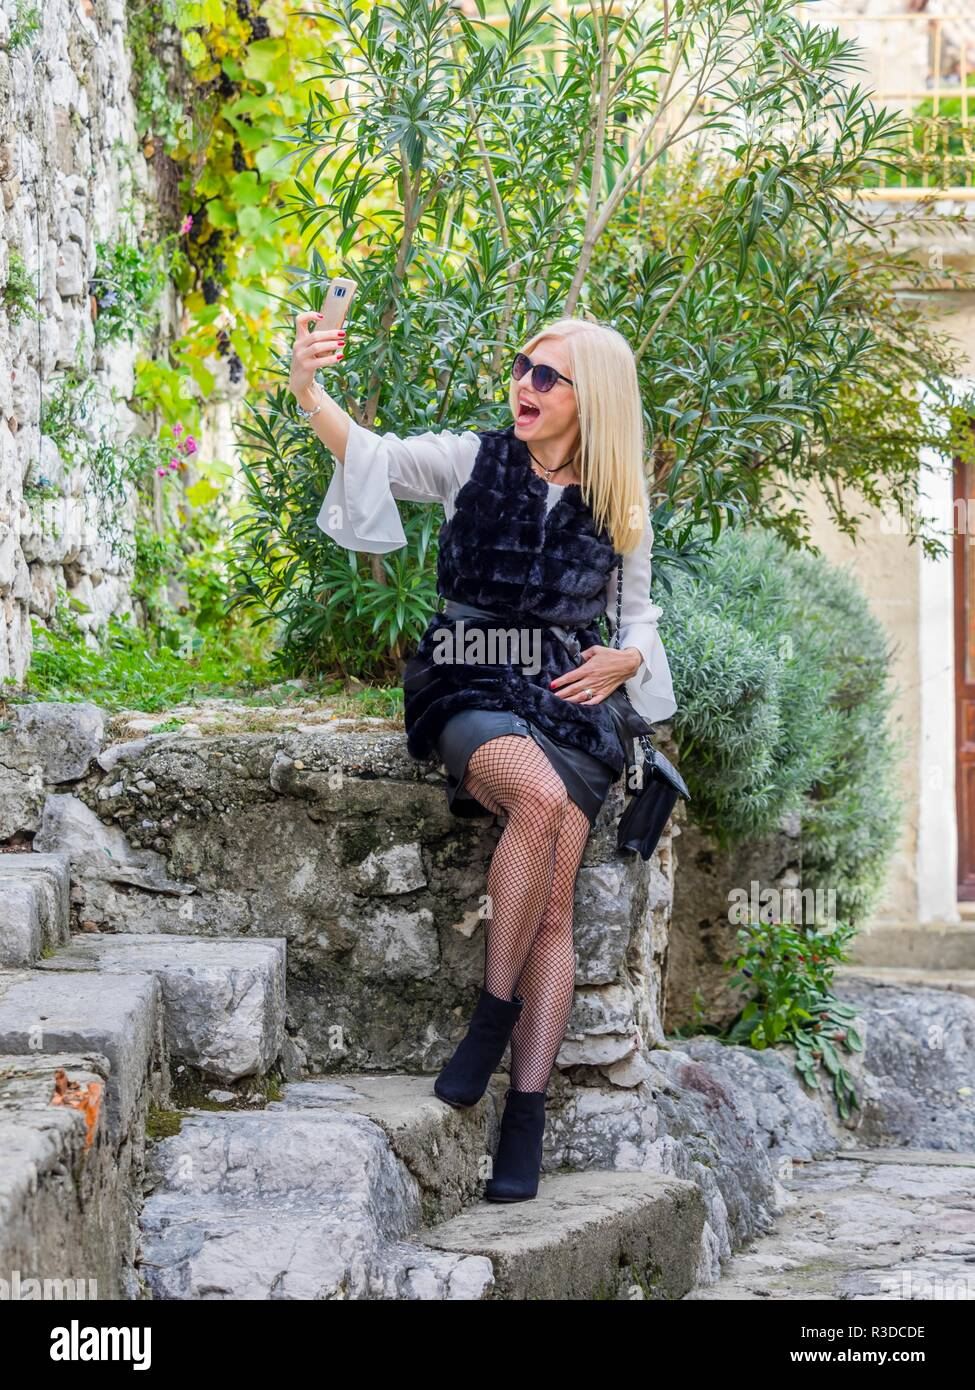 Attractive mid-adult senior pretty woman blonde hair outside sitting on stone wall taking self-portrait shoto selfie using smart-phone laughing Stock Photo